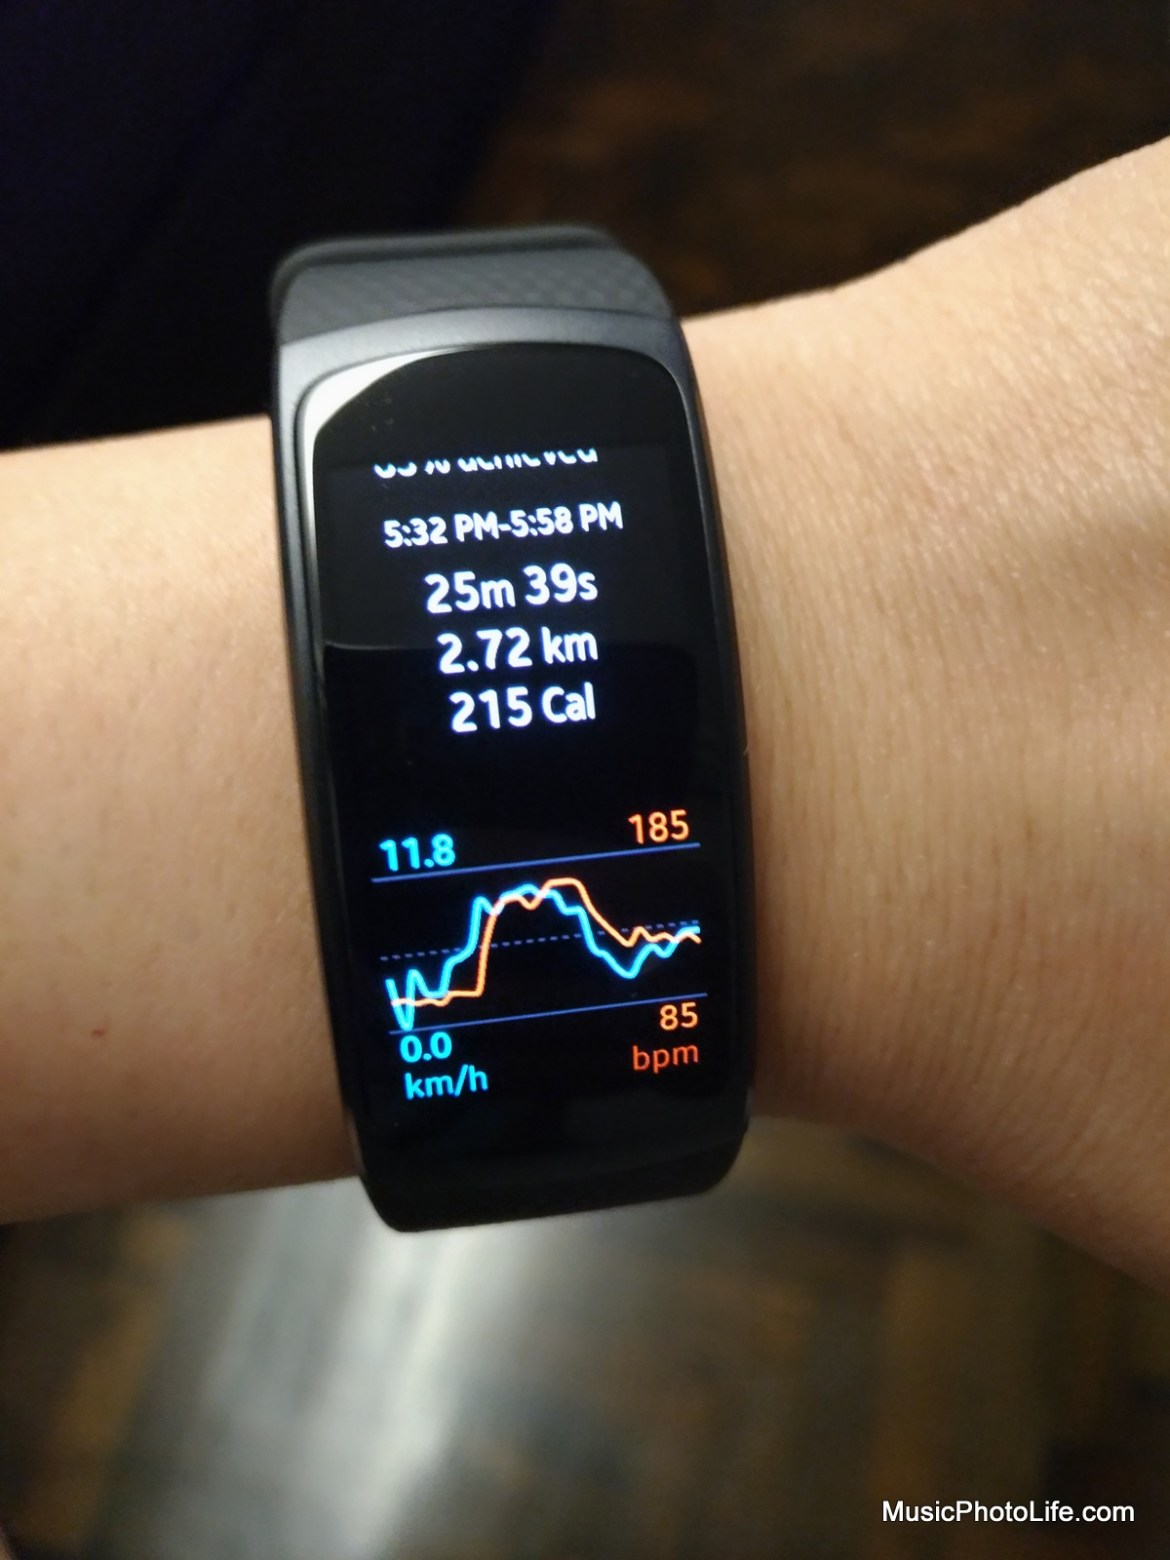 Samsung Gear Fit2 detailed workout stats